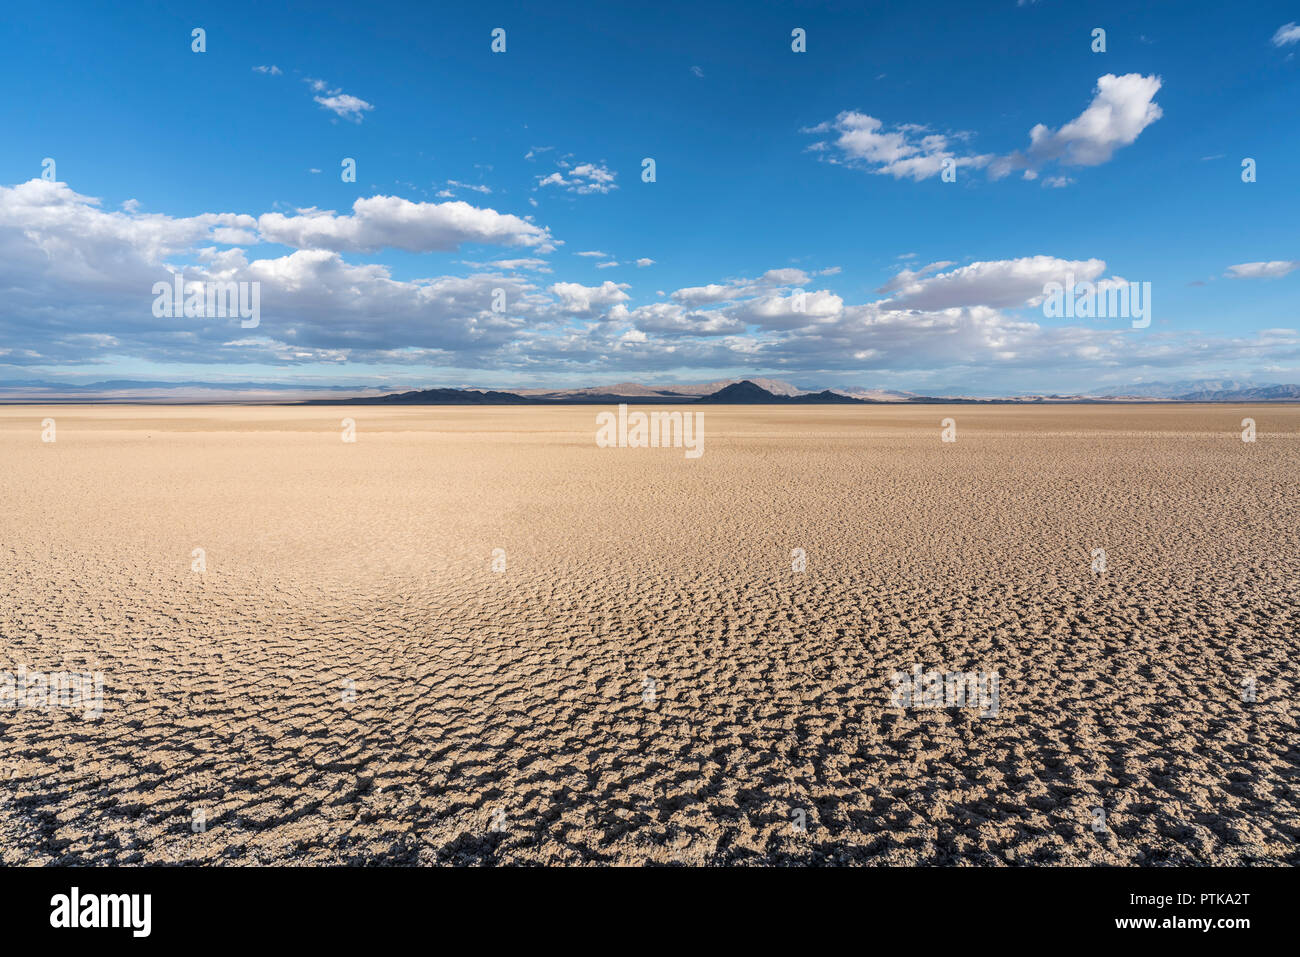 Late afternoon light at Soda dry lake in the Mojave desert near Baker, California. Stock Photo